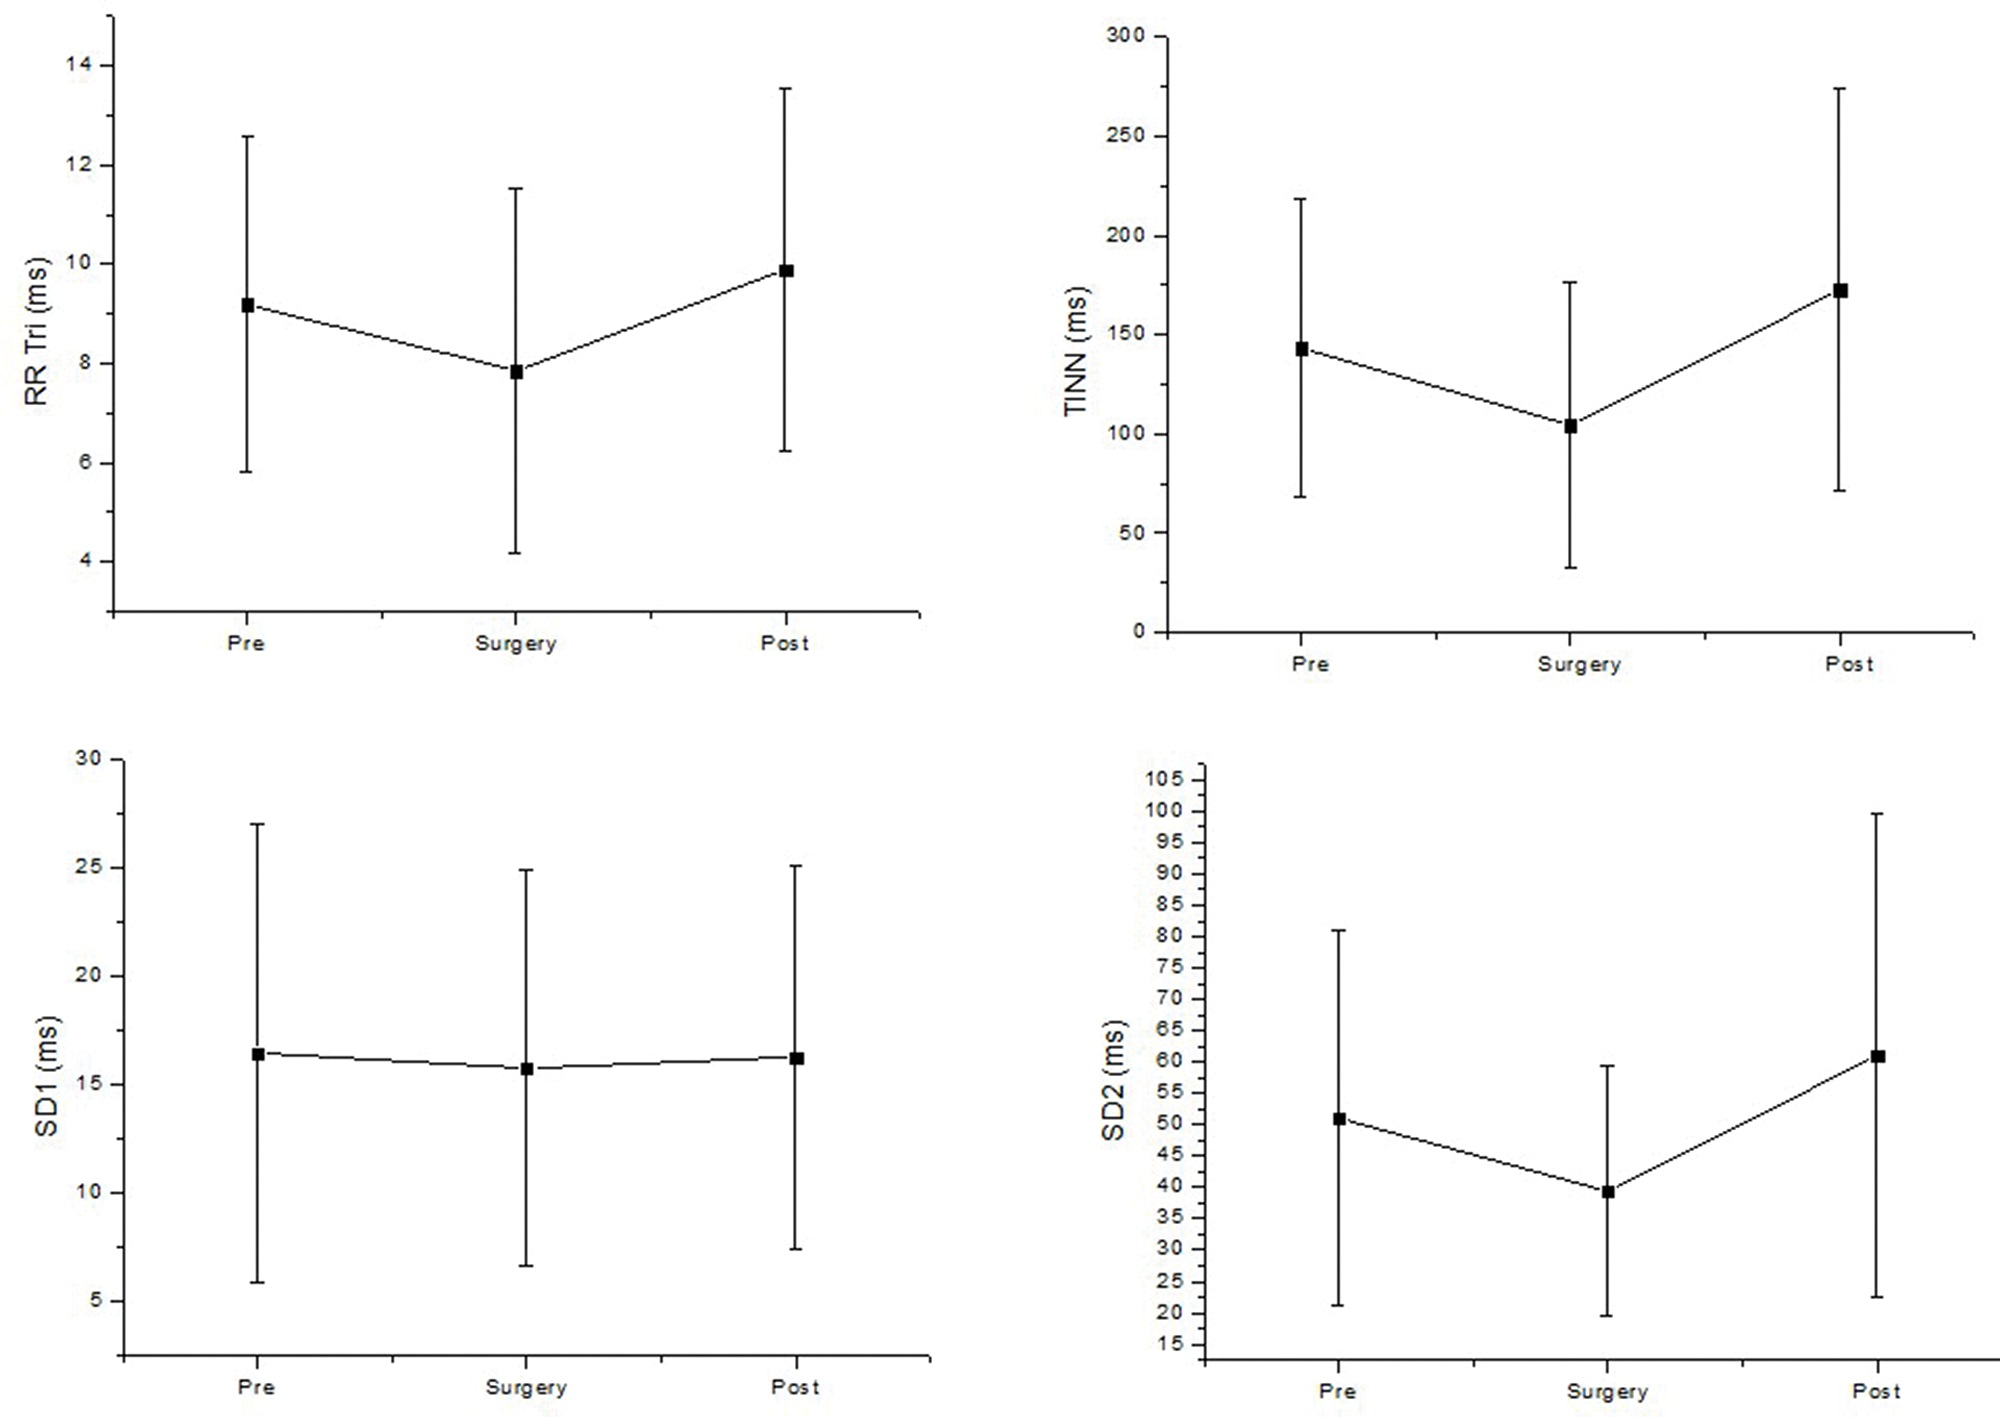 Geometric analysis of HRV before (pre), during surgery (surgery) and after surgery (post). SD1: standard deviation of the instantaneous variability of the beat-to beat HR; SD2: standard deviation of long-term continuous RR interval variability; TINN: triangular interpolation of the RR interval histogram; RRtri: triangular index. ms: milliseconds.